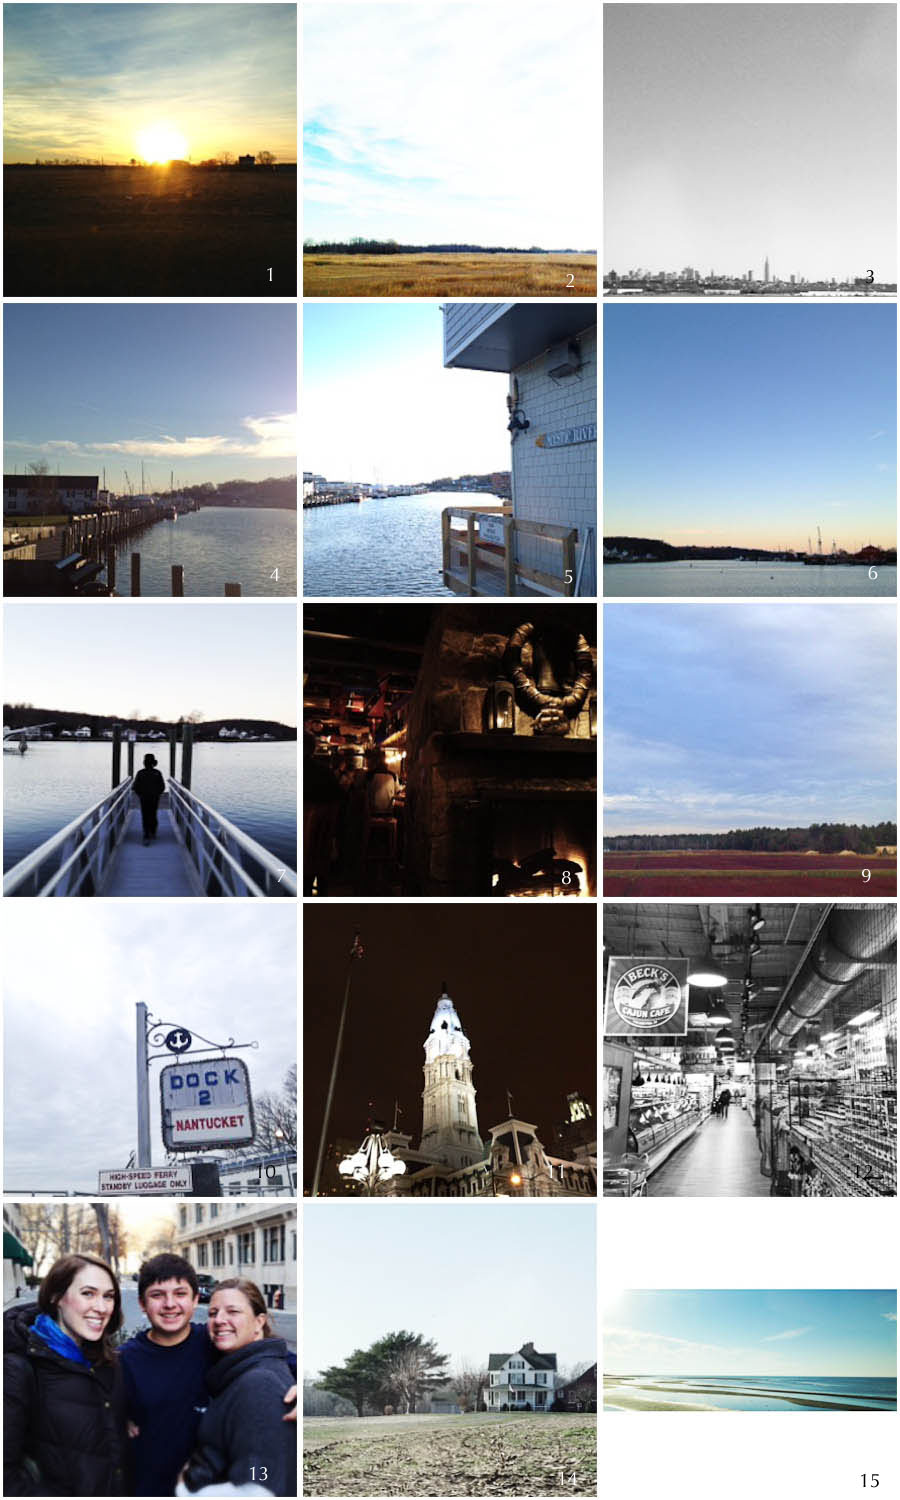 1. eastern shore sunrise | 2. frozen delaware marshes | 3. distant NYC | 4. mystic river | 5. mystic drawbridge | 6. mystic seaport | 7. cal on a pier | 8. dinner at the ancient mariner | 9. MA cranberry bogs | 10. hyannis | 11. philadelphia | 12. reading terminal market | 13. three happy people | 14. maryland farmhouse | 15. fisherman's island, chesapake bay bridge tunnel